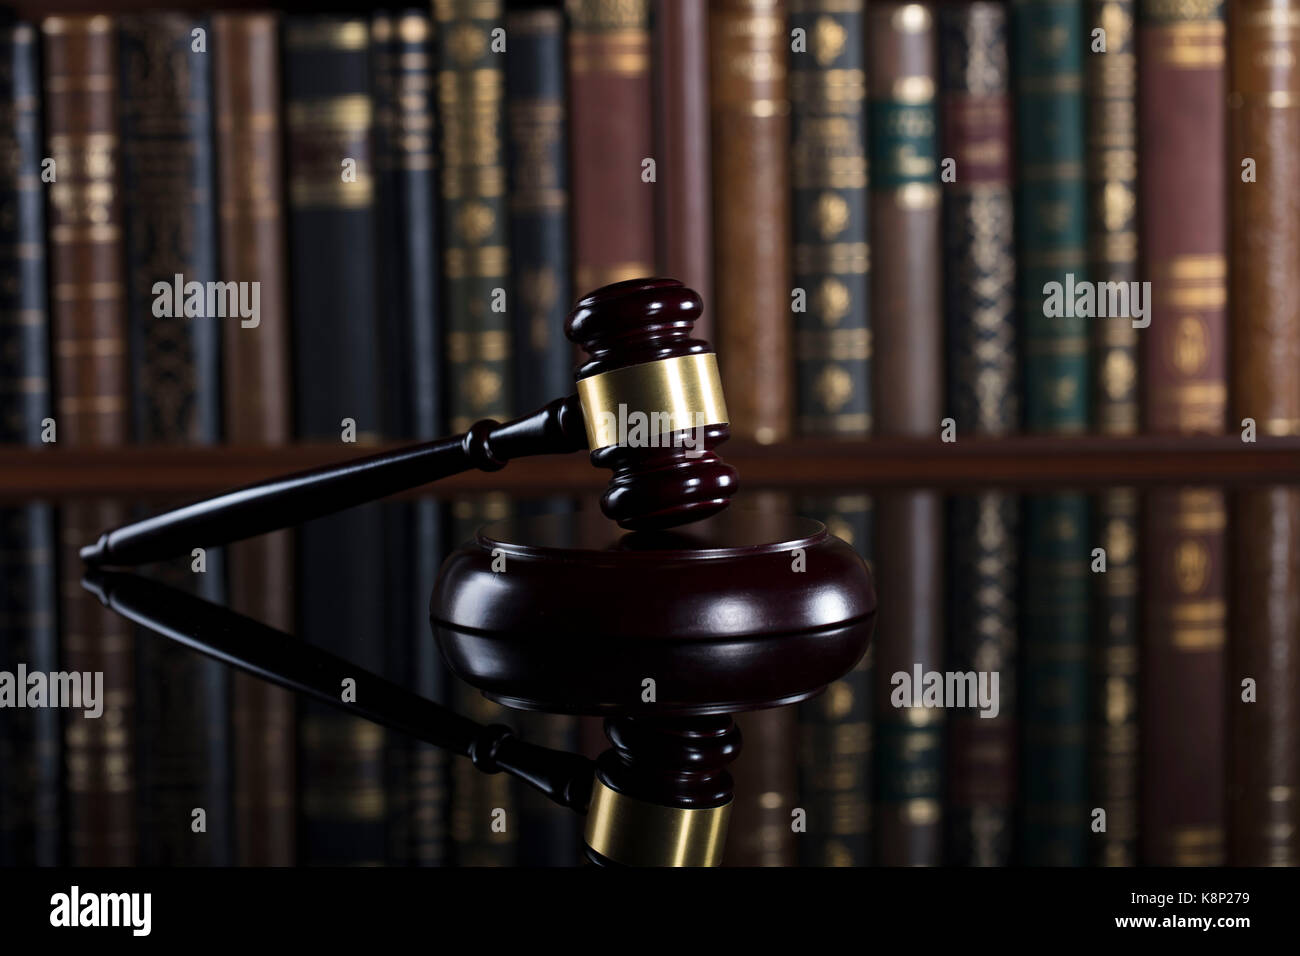 Legal system. Law and justice concept. - Stock Image